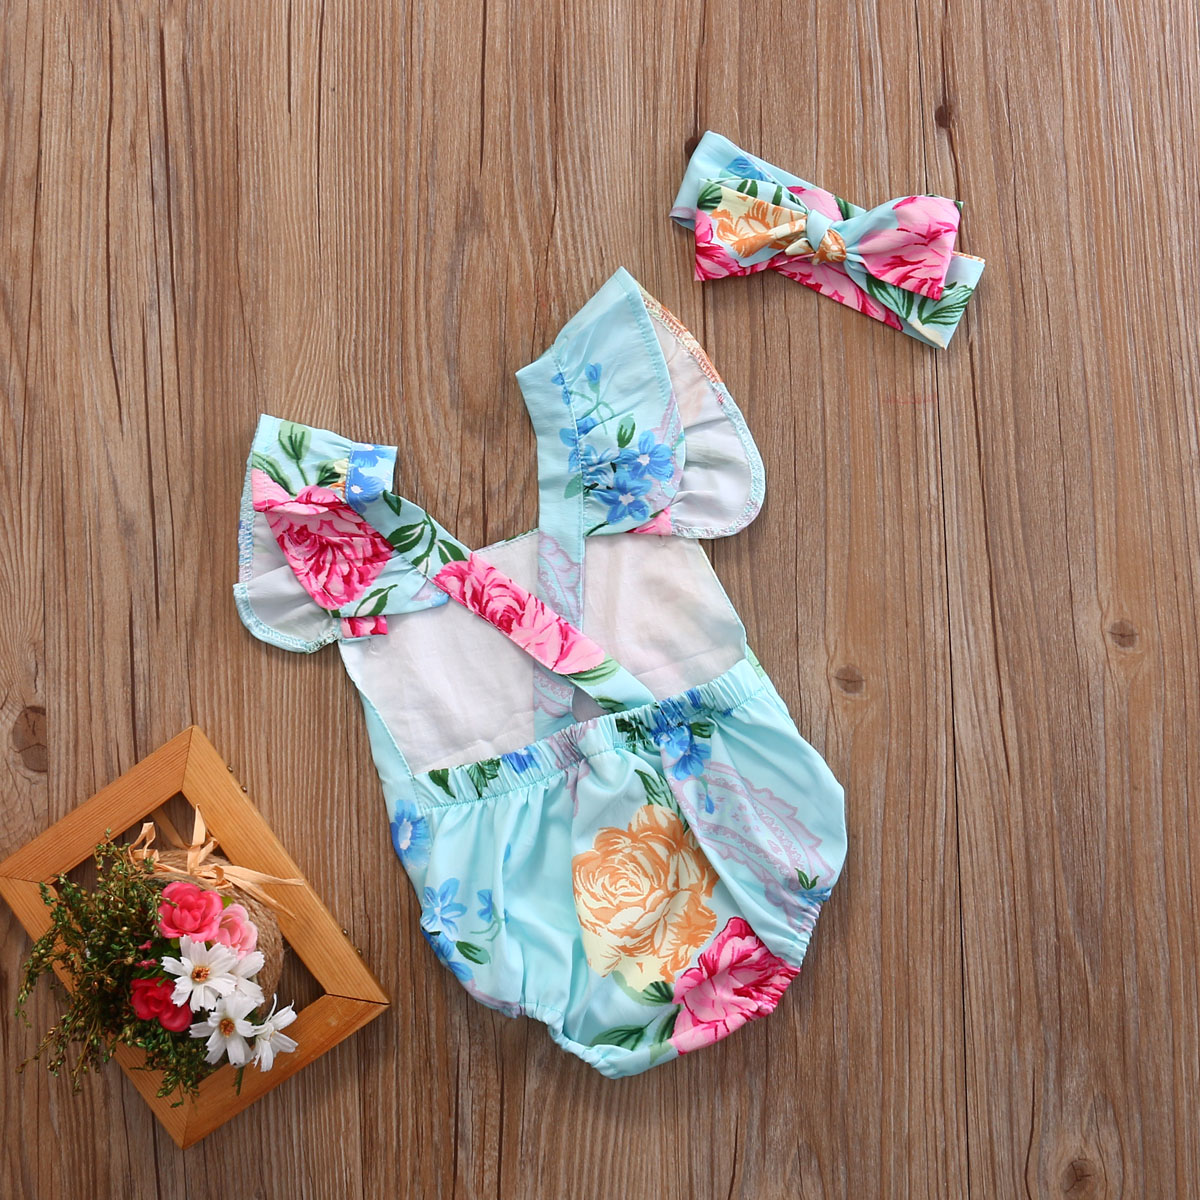 Summer-2017-Newborn-Infant-Baby-Girl-Floral-Button-Romper-Backcross-Jumpsuit-Clothes-Outfits-Sunsuit-Clothing-2